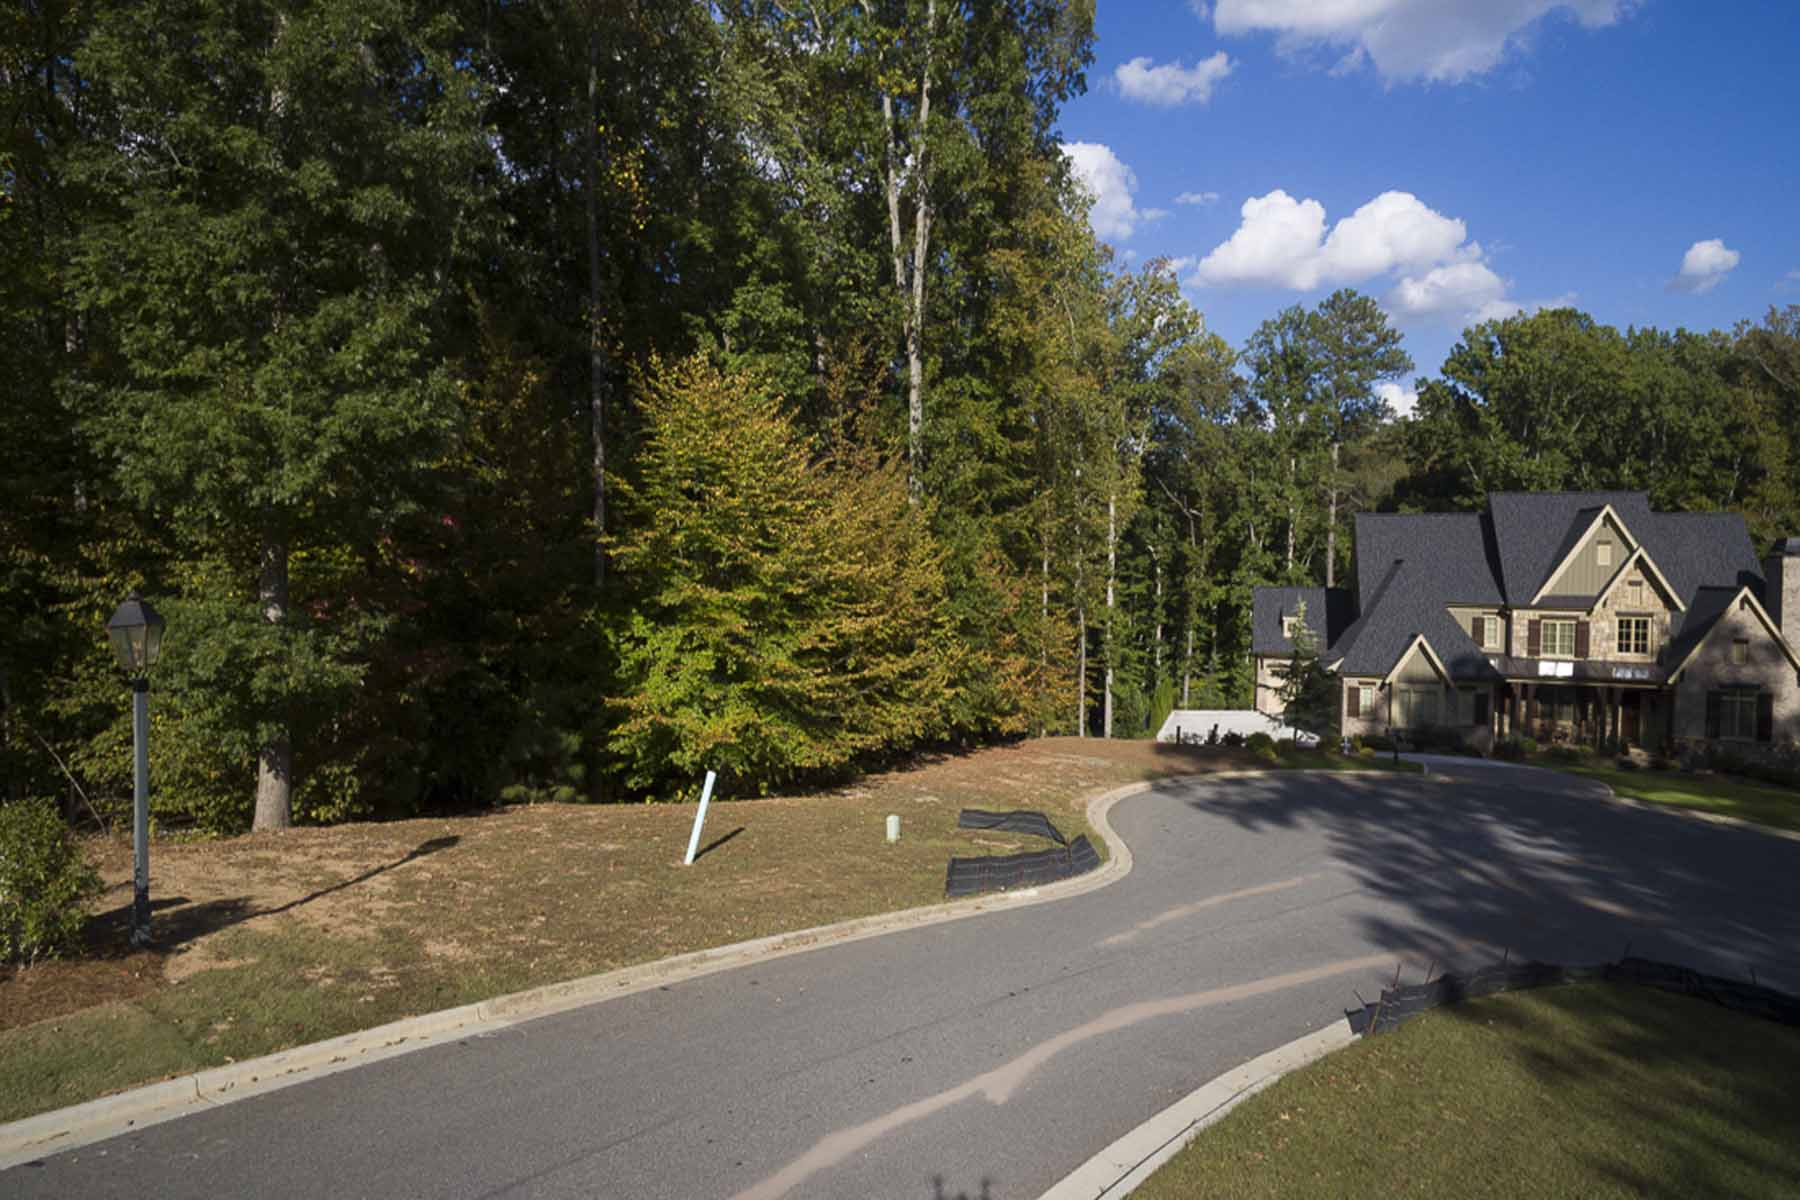 Villa per Vendita alle ore Welcome Home to The River Club 5192 Boulder Bluff Way Suwanee, Georgia, 30024 Stati Uniti